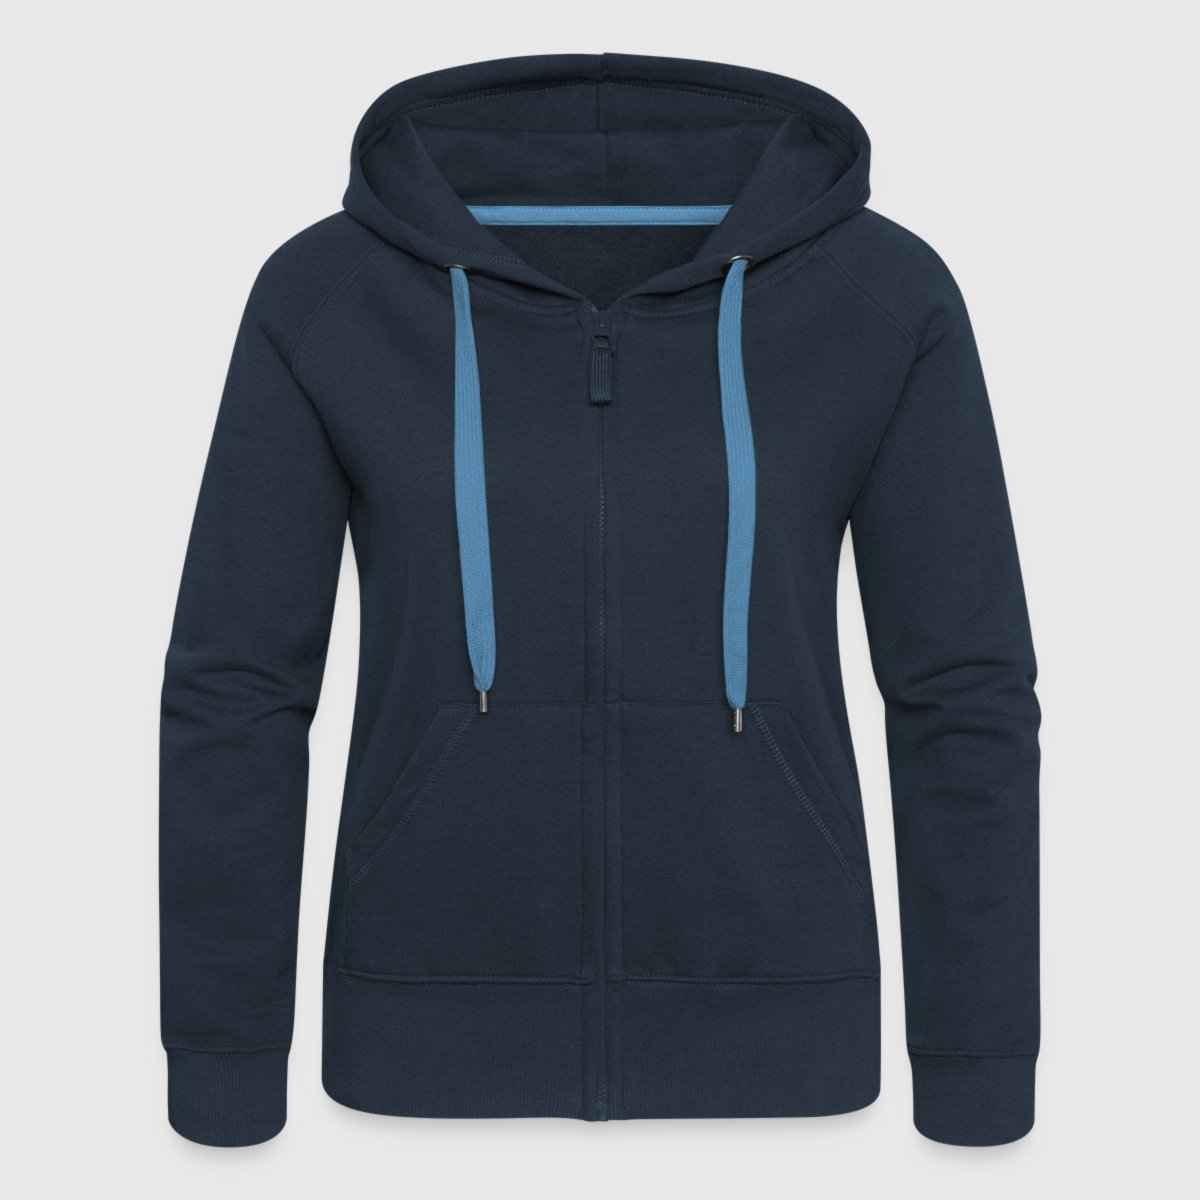 Women's Premium Hooded Jacket - Front